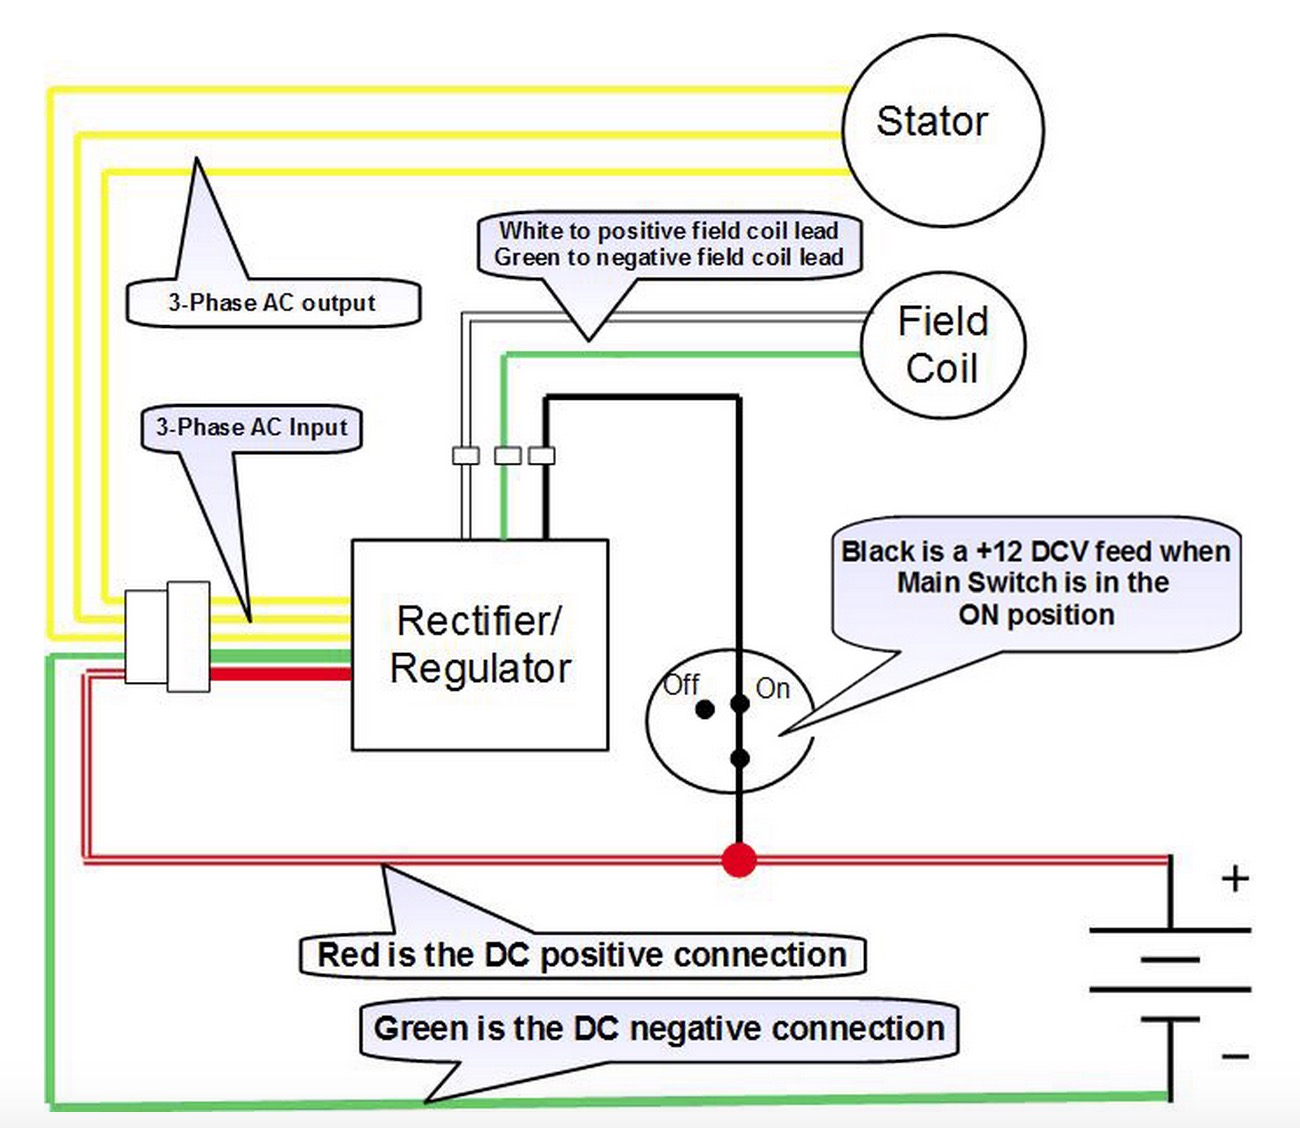 honda 10 100 e honda rectifier diagram honda ct70 rectifier diagram \u2022 free wiring 5 wire rectifier diagram at gsmx.co